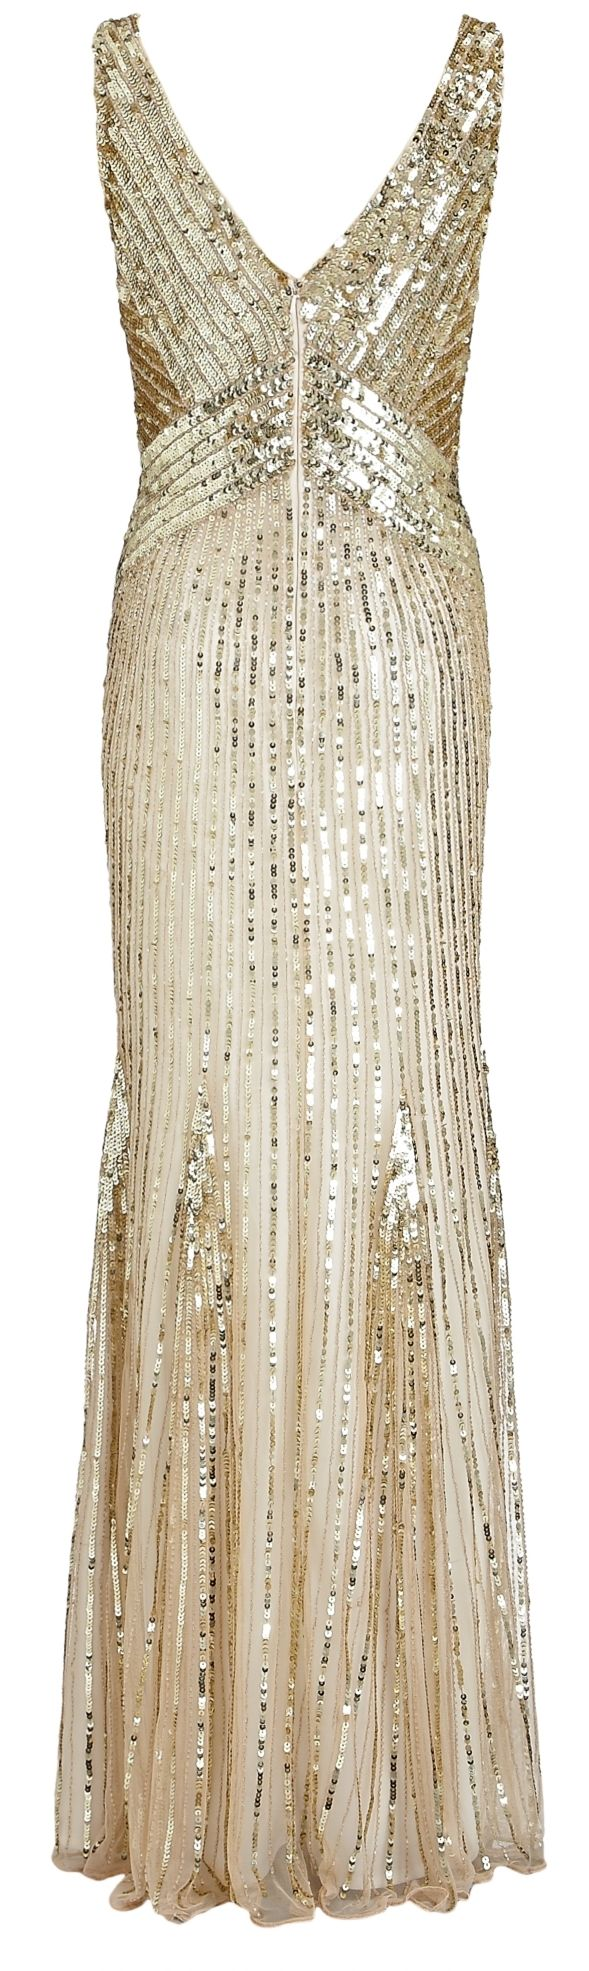 Sequin dress from  John Lewis: 1920 S, Fashion Clothing, Sequins Gowns, Gold Sequins, Sequins Dresses, Gold Bridesmaid, 1920S, John Lewis, Weddings Gowns